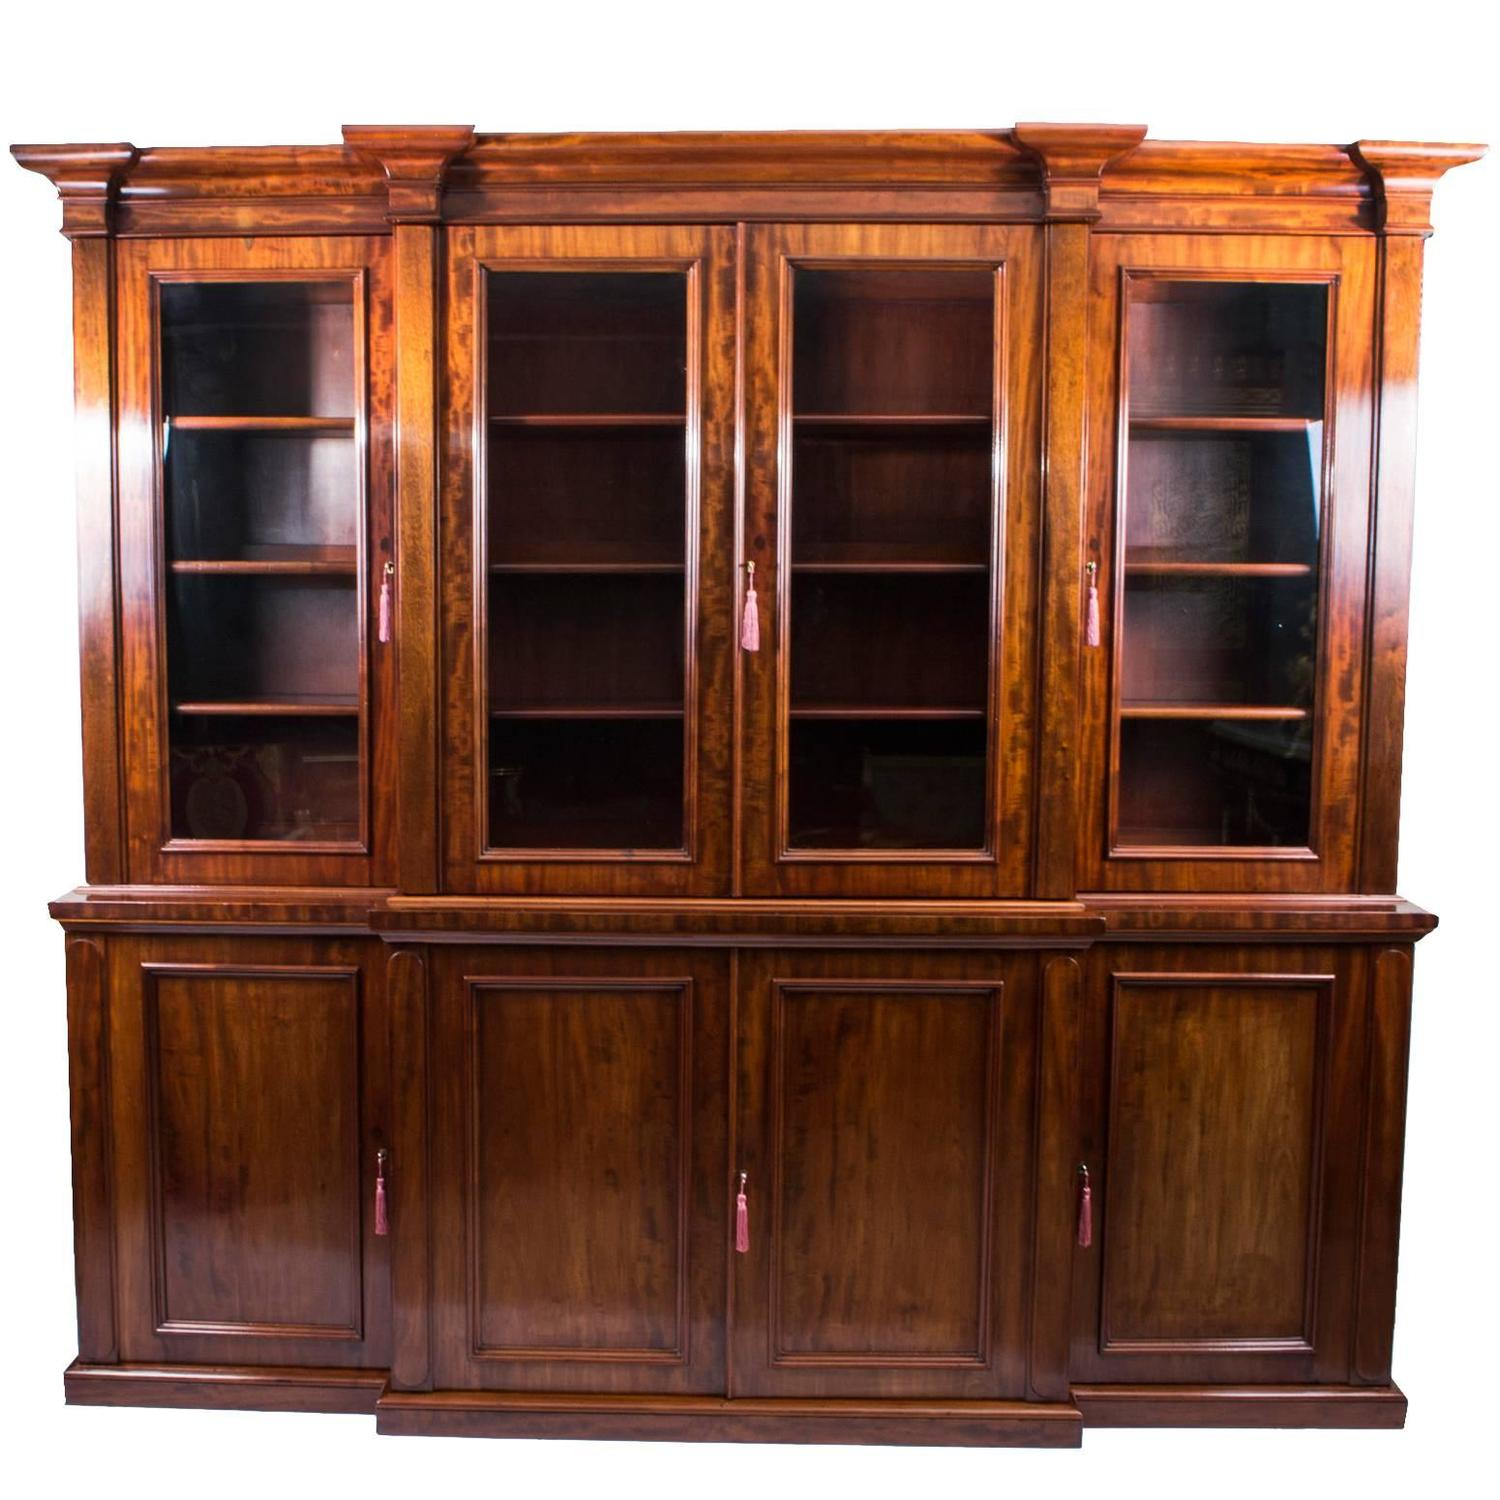 Antique Victorian Flame Mahogany Bookcase circa 1850 at 1stdibs